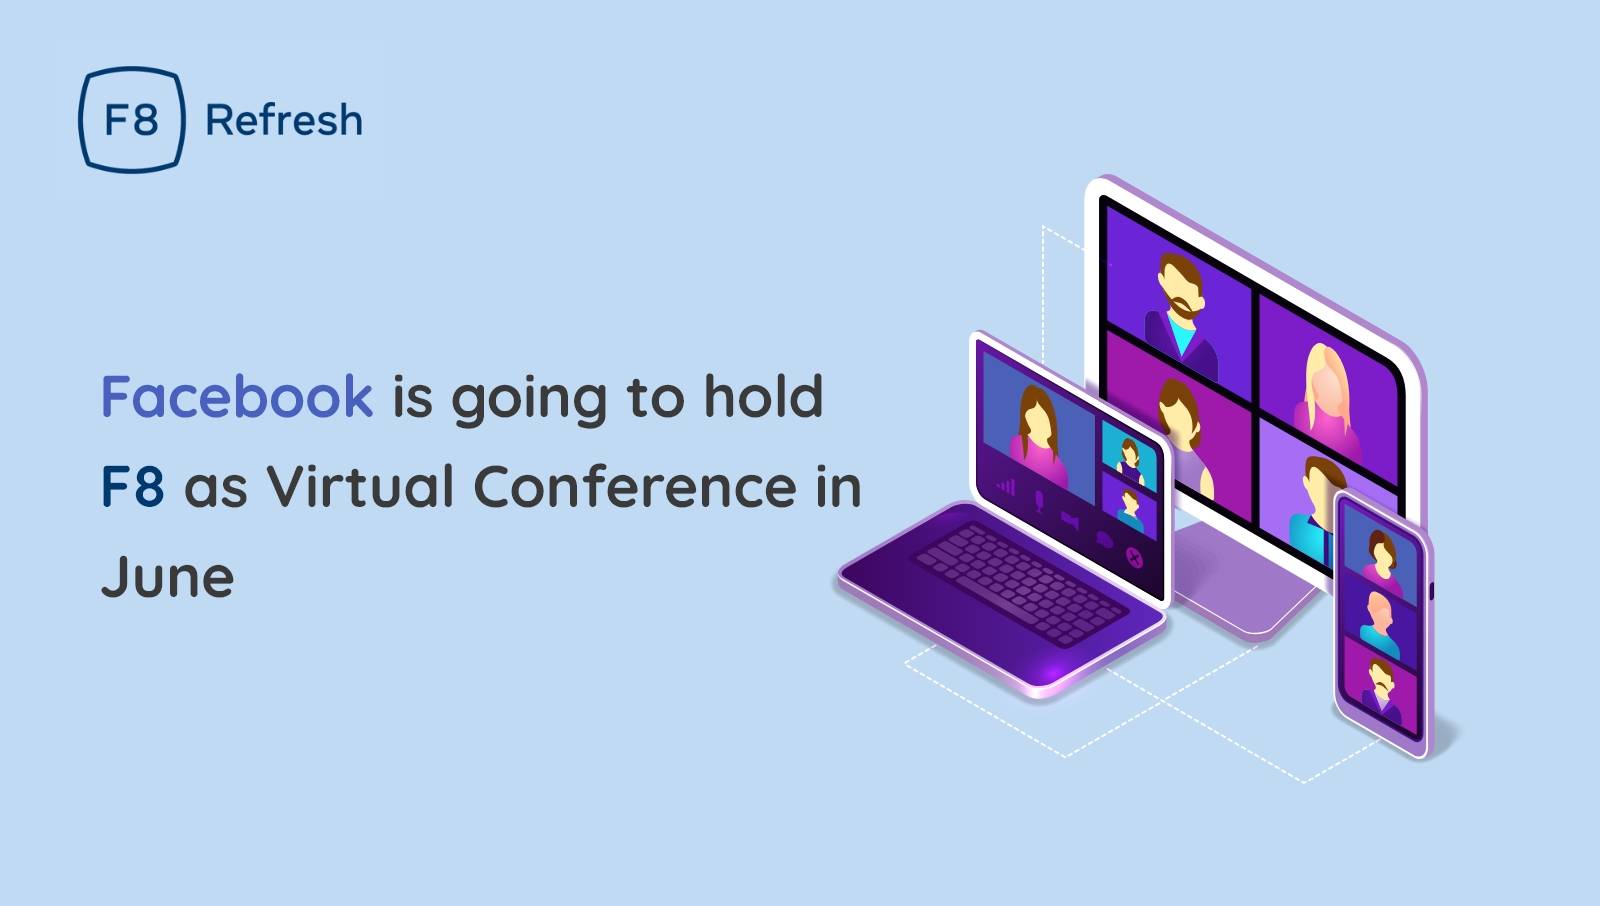 Facebook-is-going-to-hold-F8-as-a-Virtual-Conference